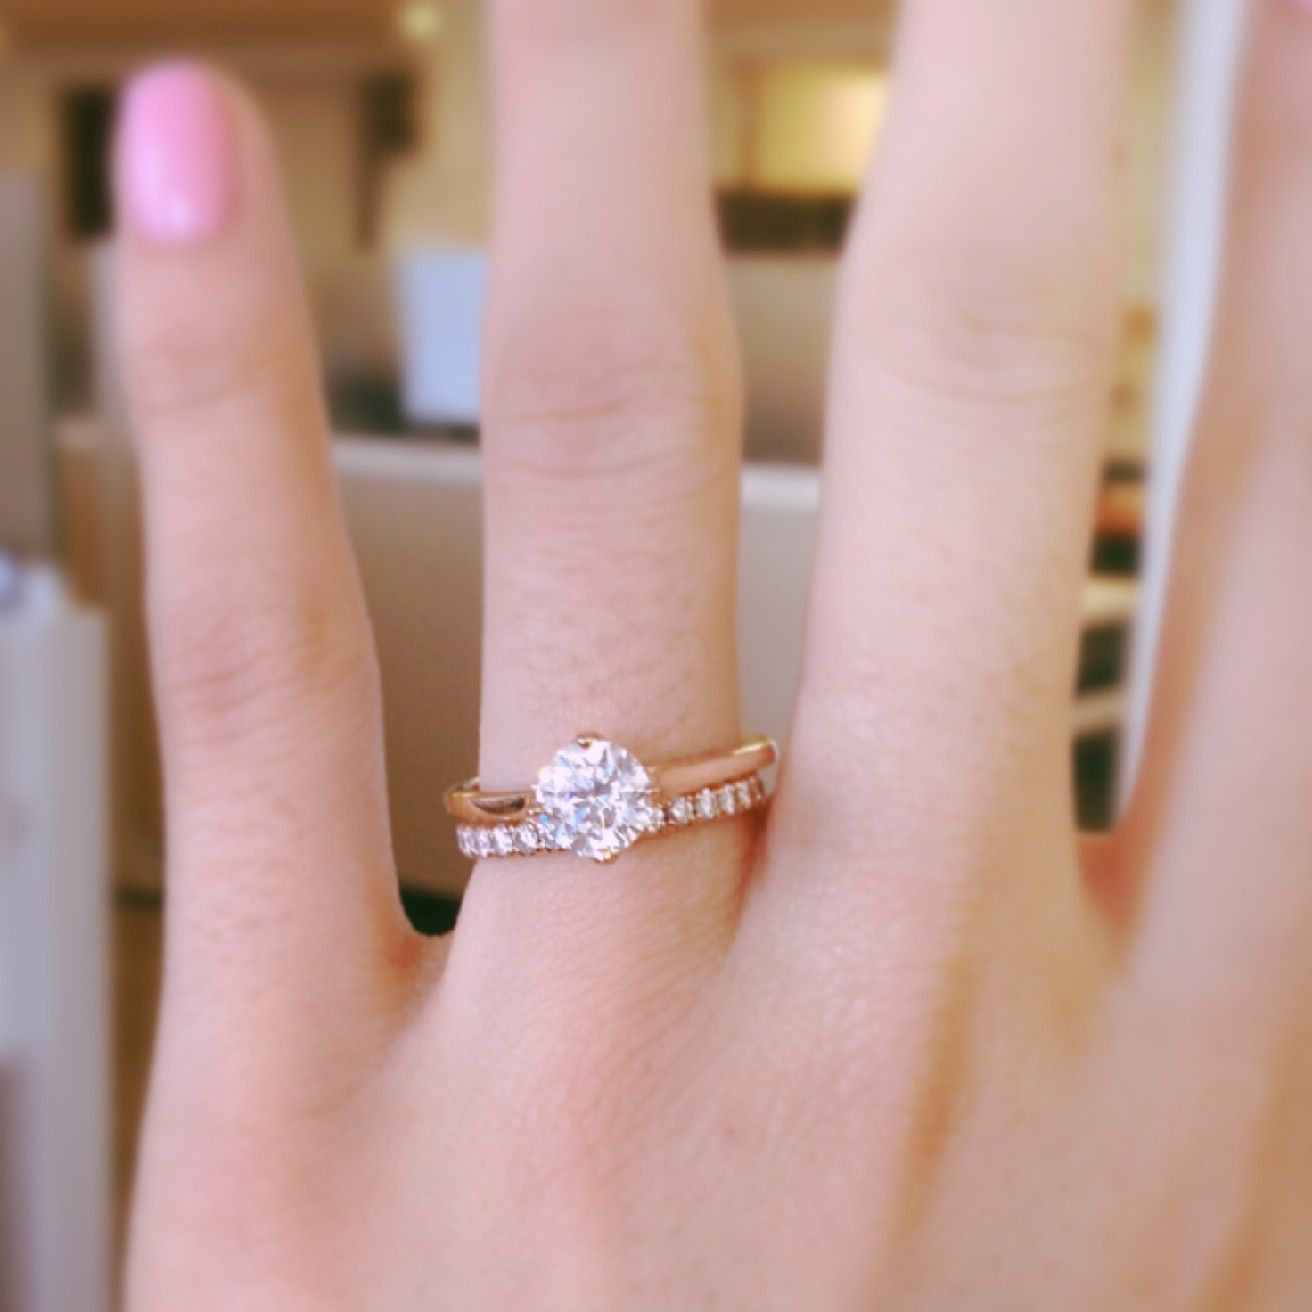 East-West Solitaire Engagement Ring in 14k Rose Gold | Solitaire ...